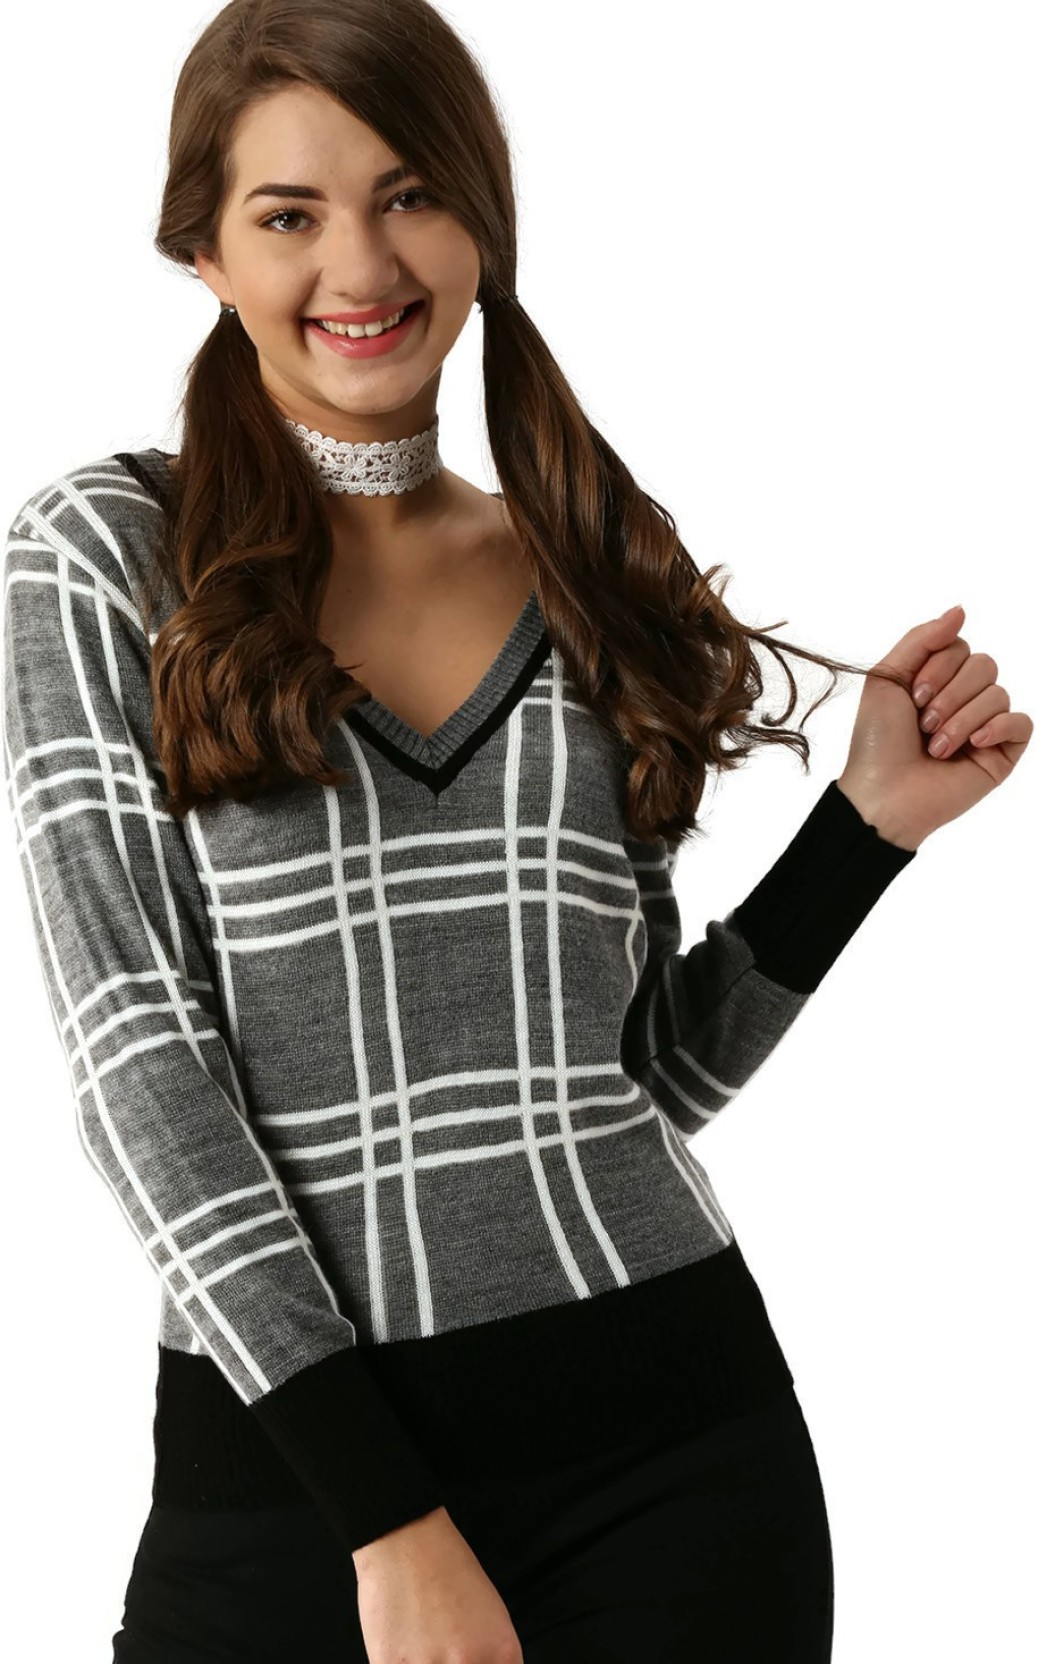 953d0fc0c504d8 Dressberry Checkered V-neck Casual Women Grey, White Sweater. ADD TO CART